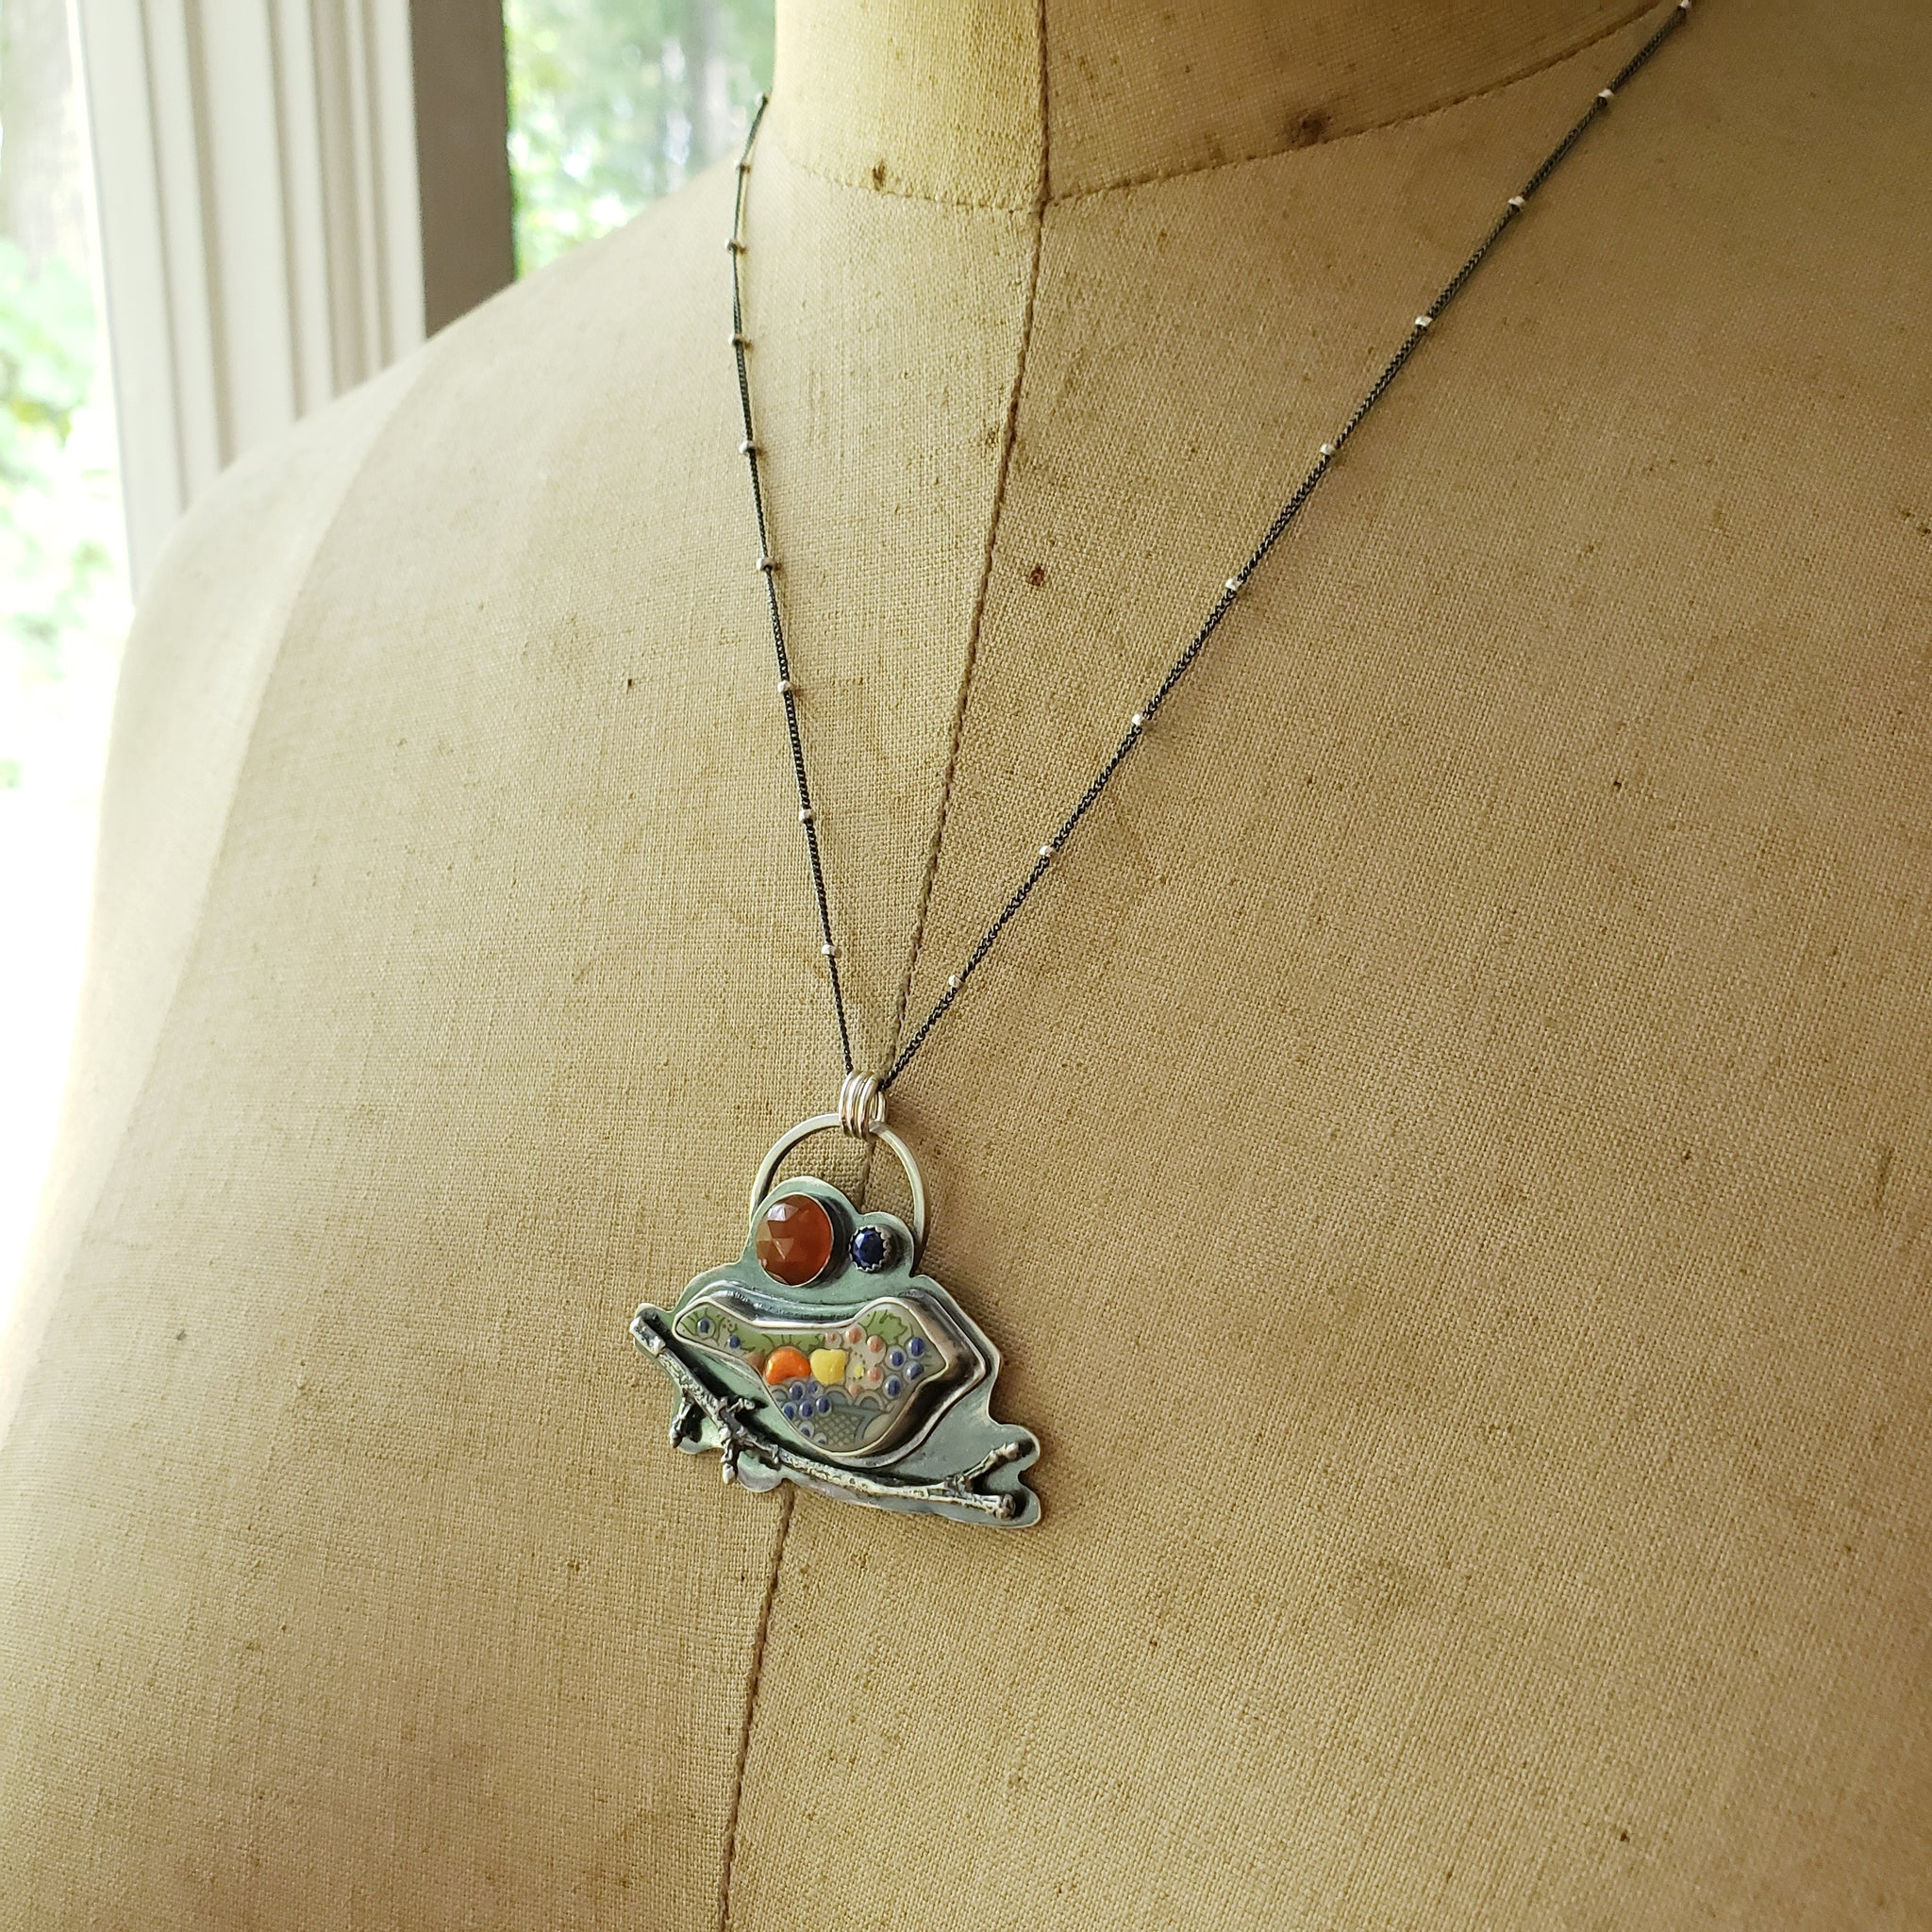 Beautifully Broken Birdie Pendant Collection - Upcycled Lenox China in Sterling Silver